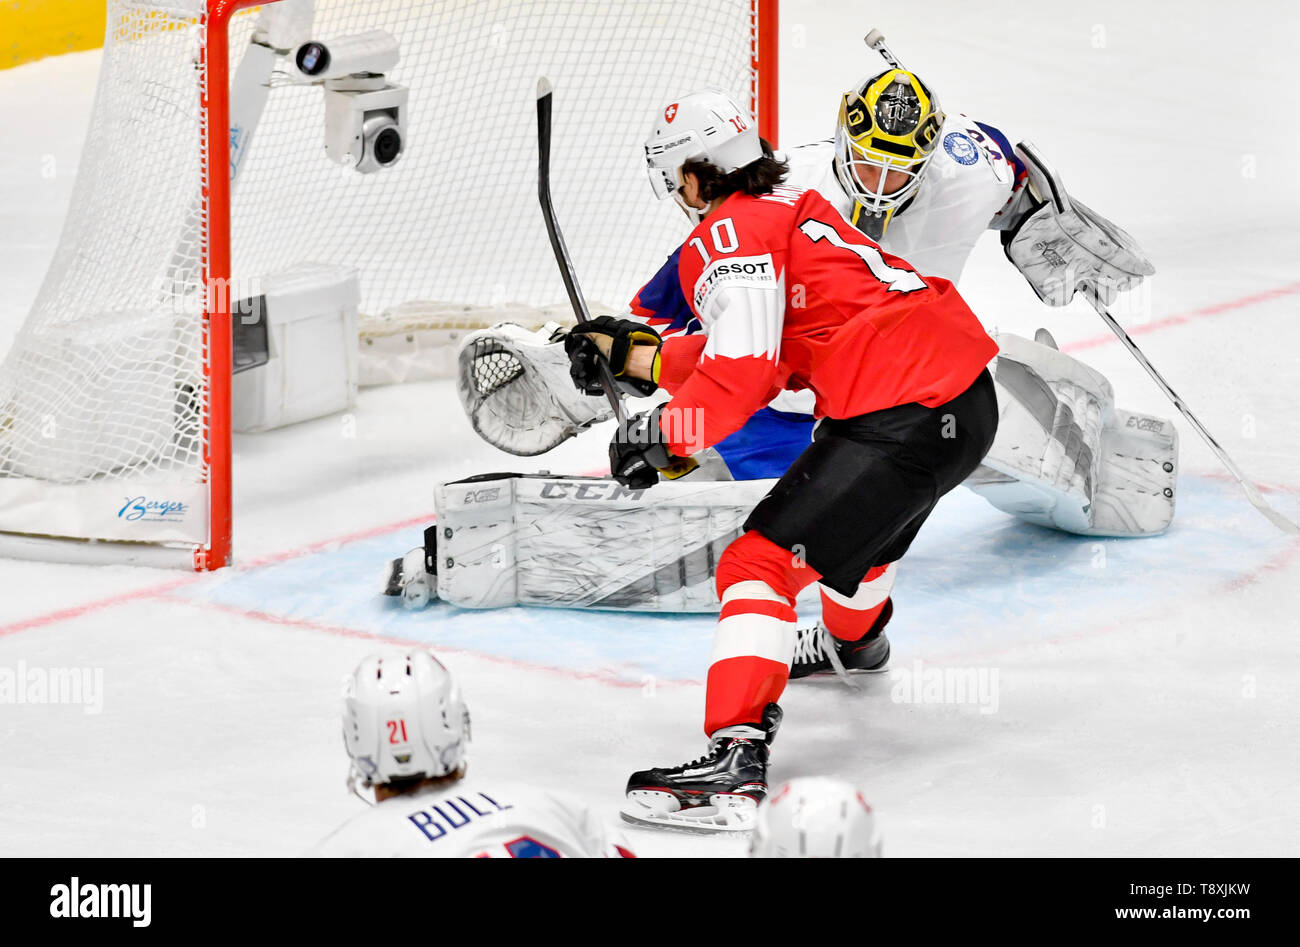 Bratislava, Slovakia. 15th May, 2019. Andres Ambuhl (SWE), in red, scores against goaltender Henrik Holm (NOR) in the match between Switzerland and Norway within the 2019 IIHF World Championship in Bratislava, Slovakia, on May 15, 2019. Credit: Vit Simanek/CTK Photo/Alamy Live News Stock Photo